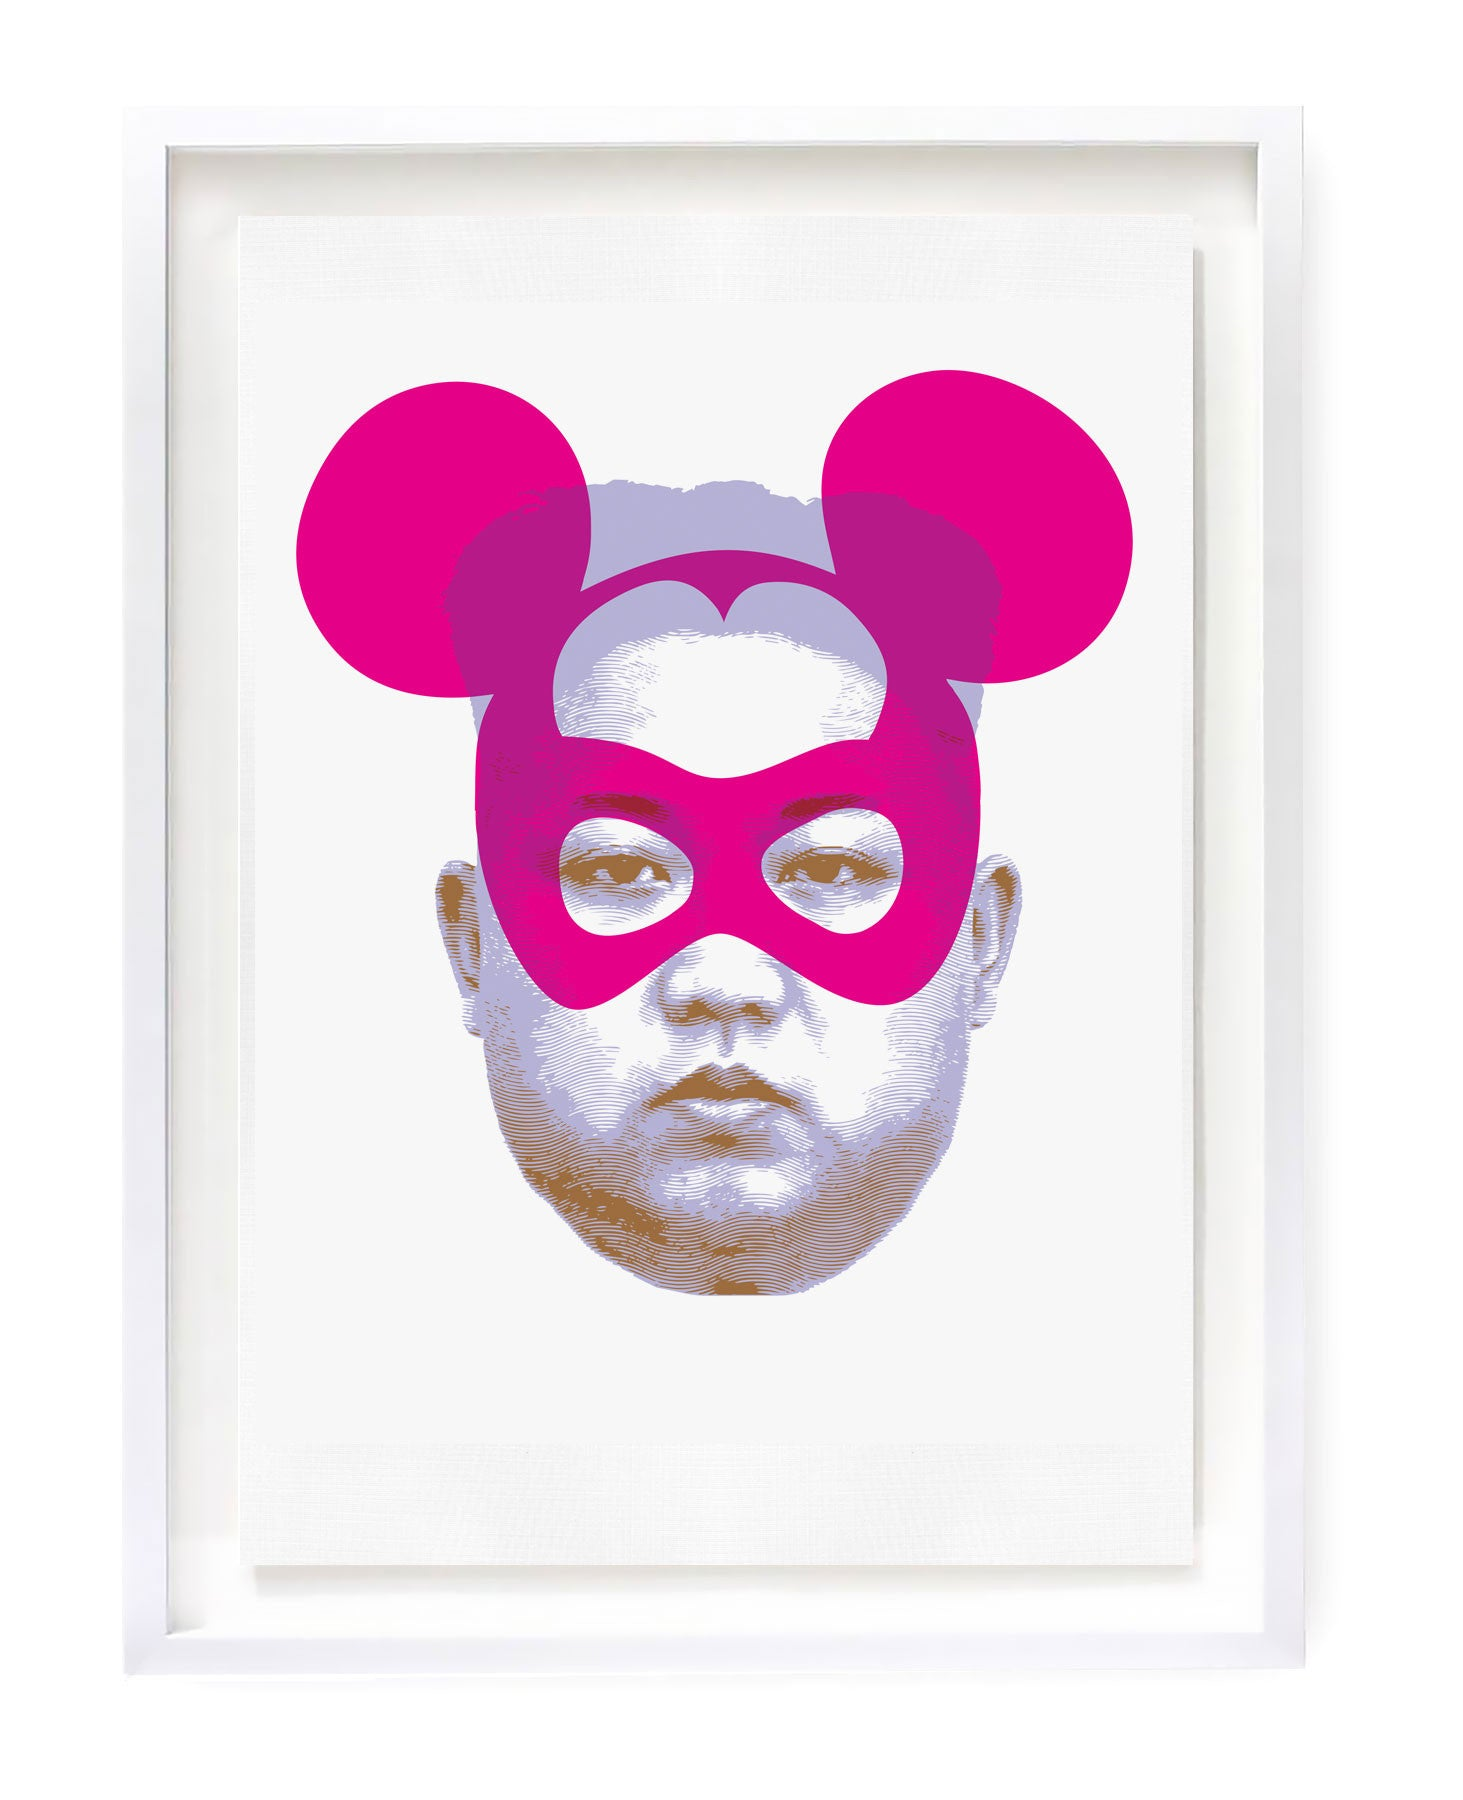 Limited edition silkscreen print featuring Jong-un with superimposed Mickey Mouse ear hat.